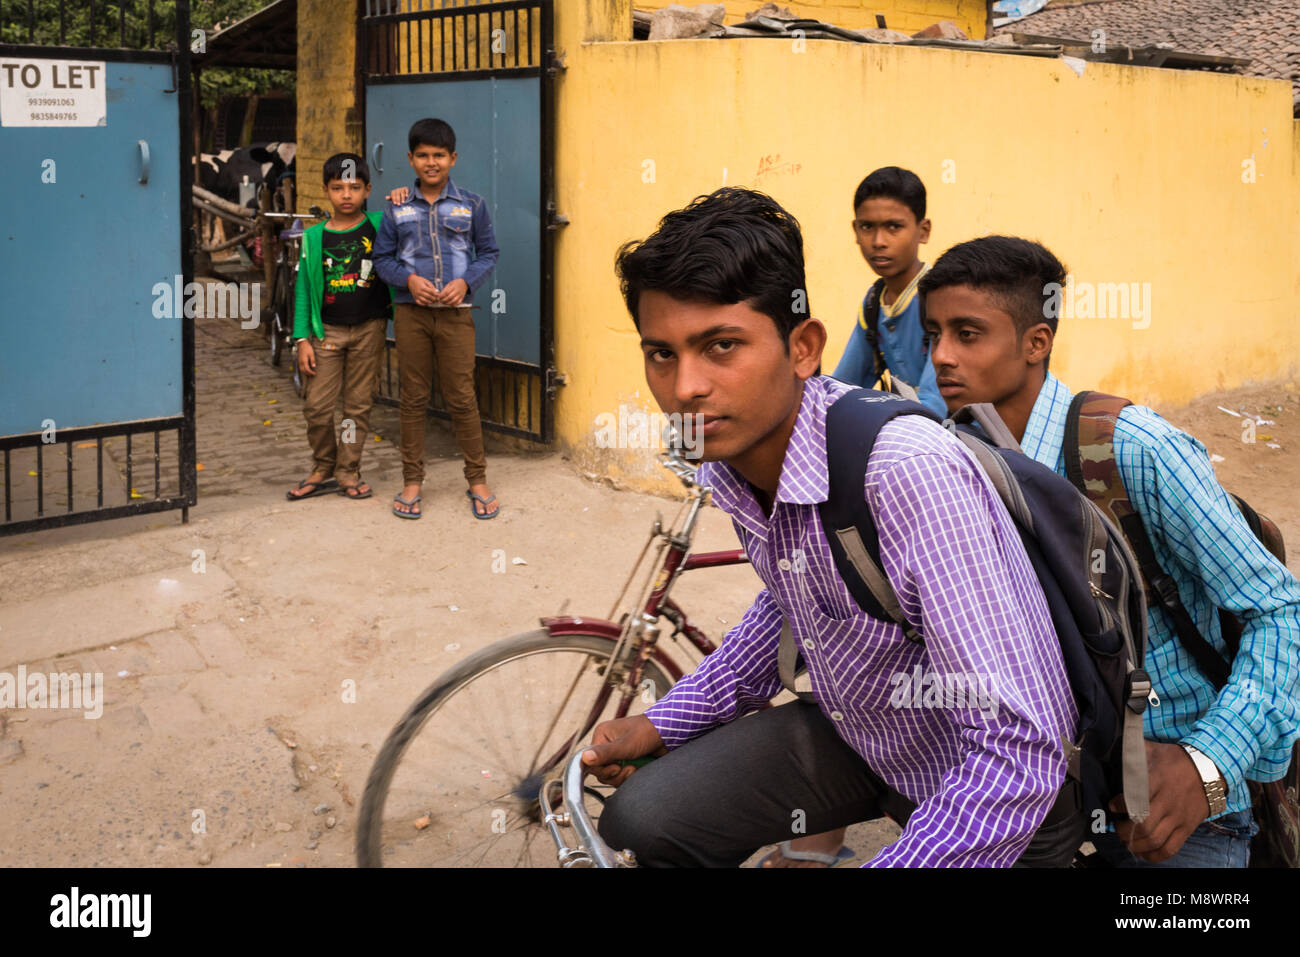 Students riding their bicycles to school, Hajipur, India. - Stock Image